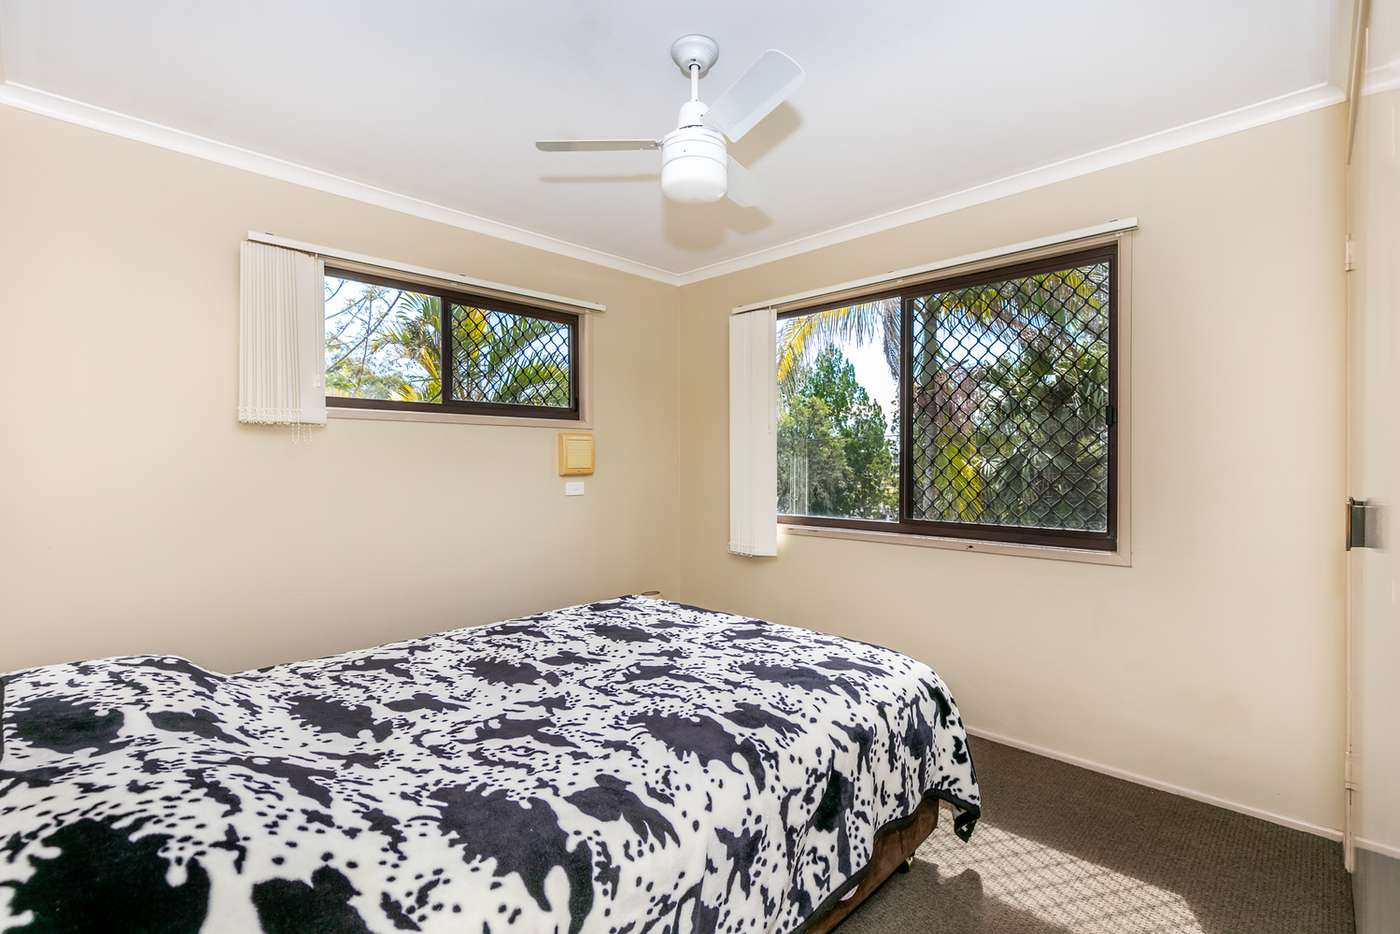 Sixth view of Homely house listing, 73 Church Road, Bethania QLD 4205